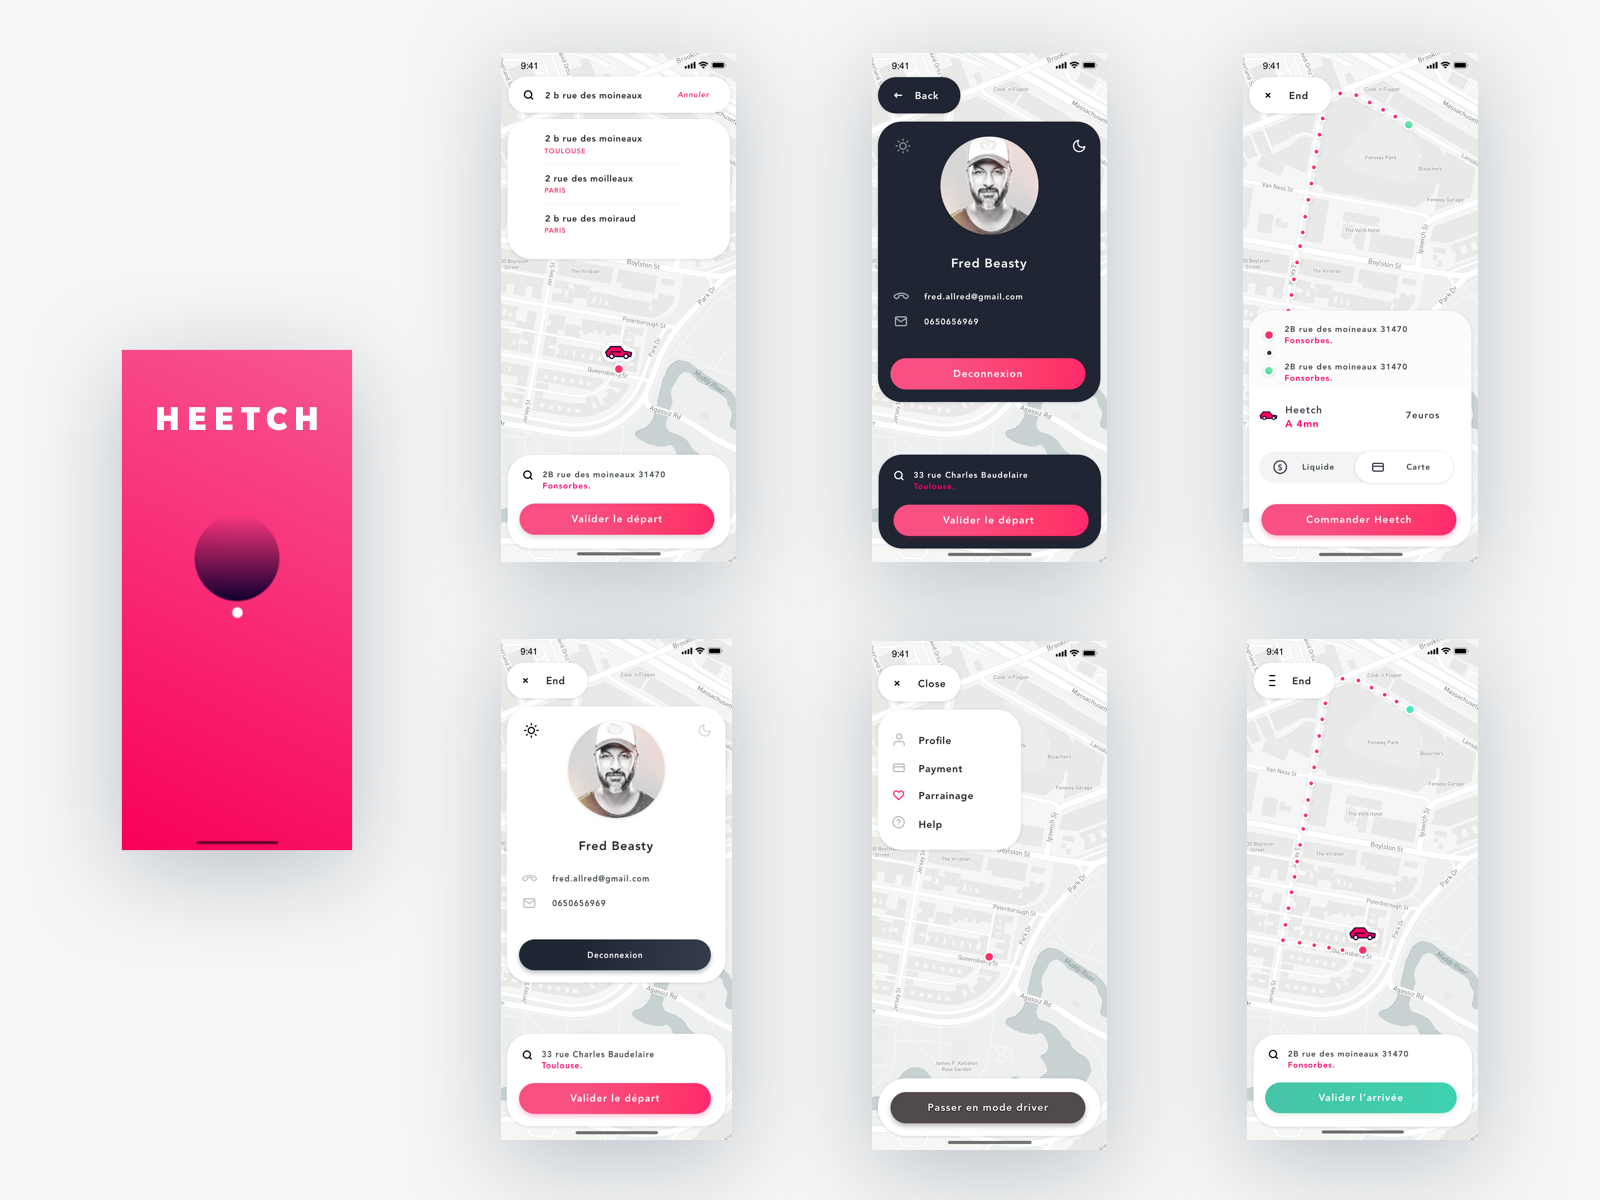 2B Auto Fonsorbes heetch redesign by beasty for seriously on dribbble